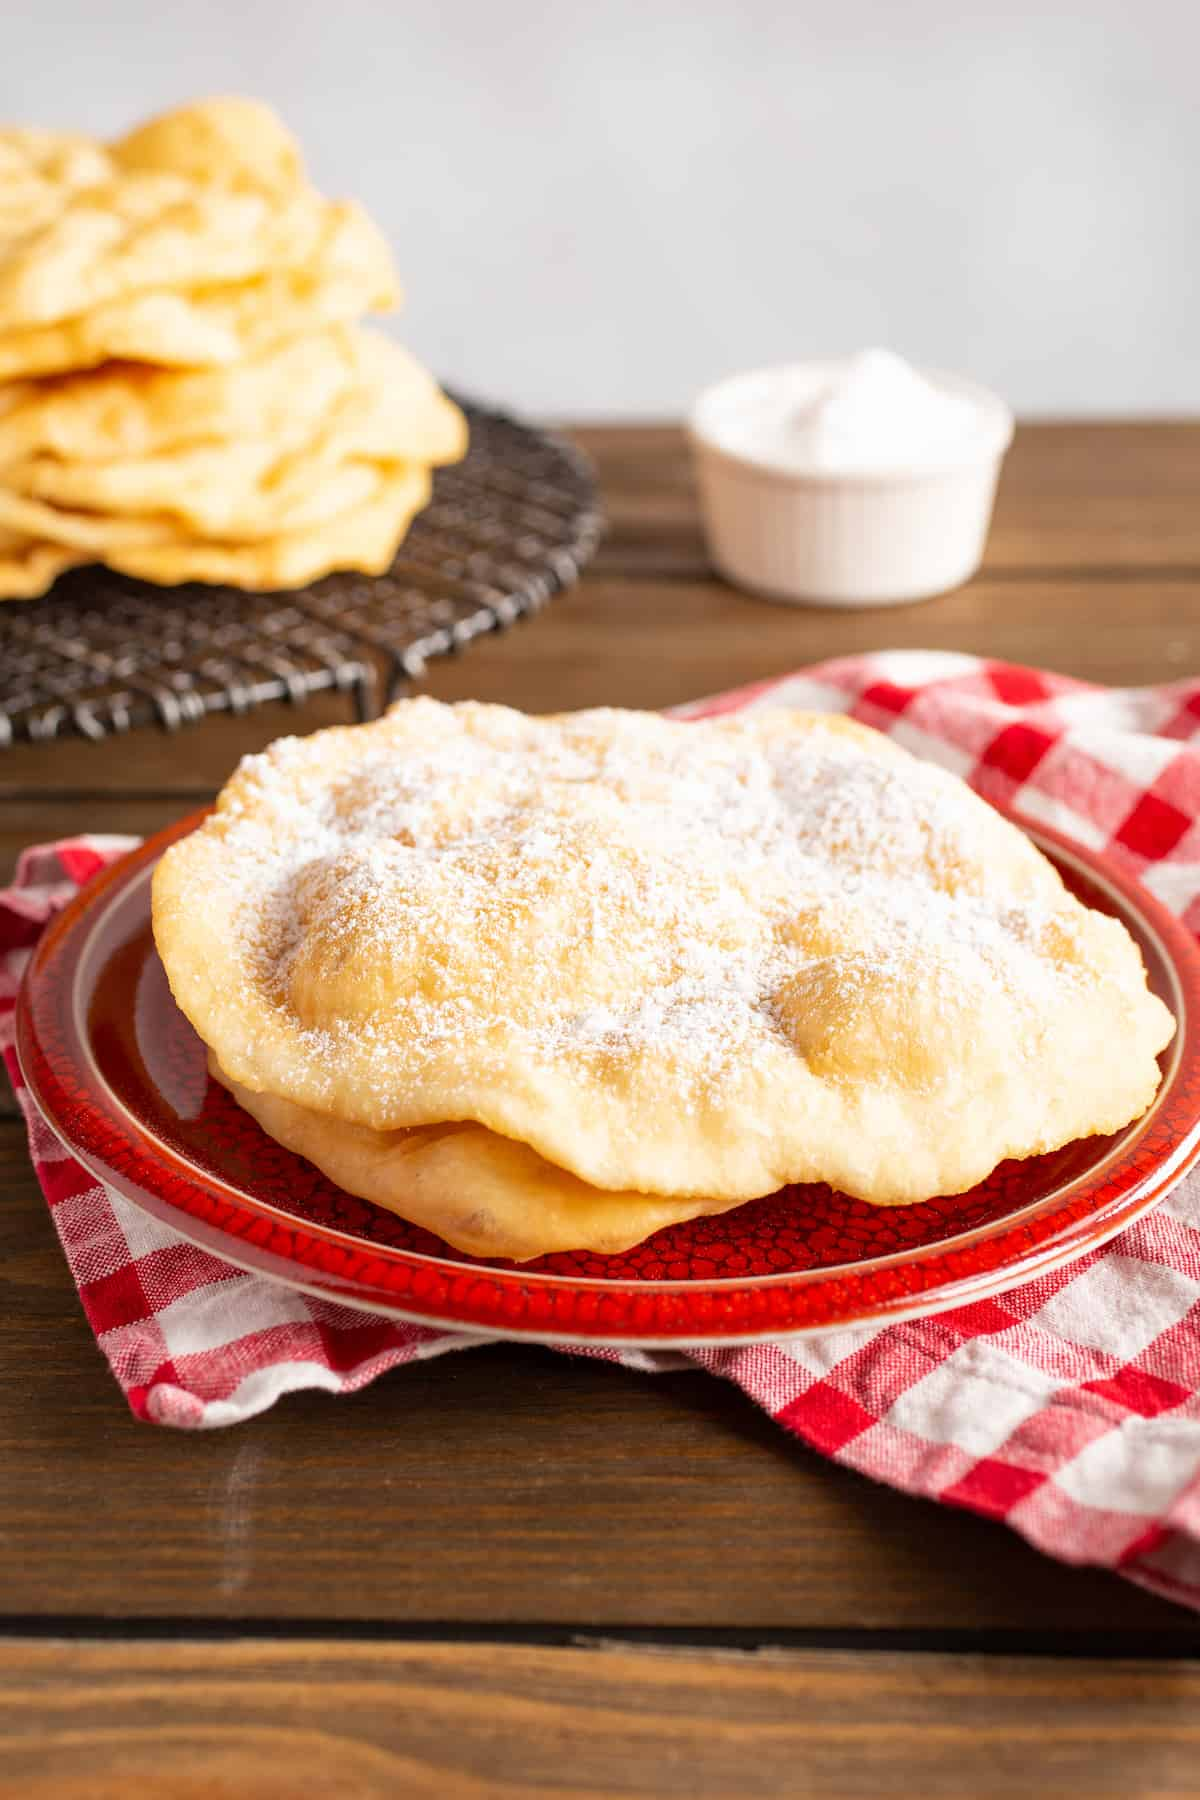 Fried Dough That Doesn't Need a Deep Fryer